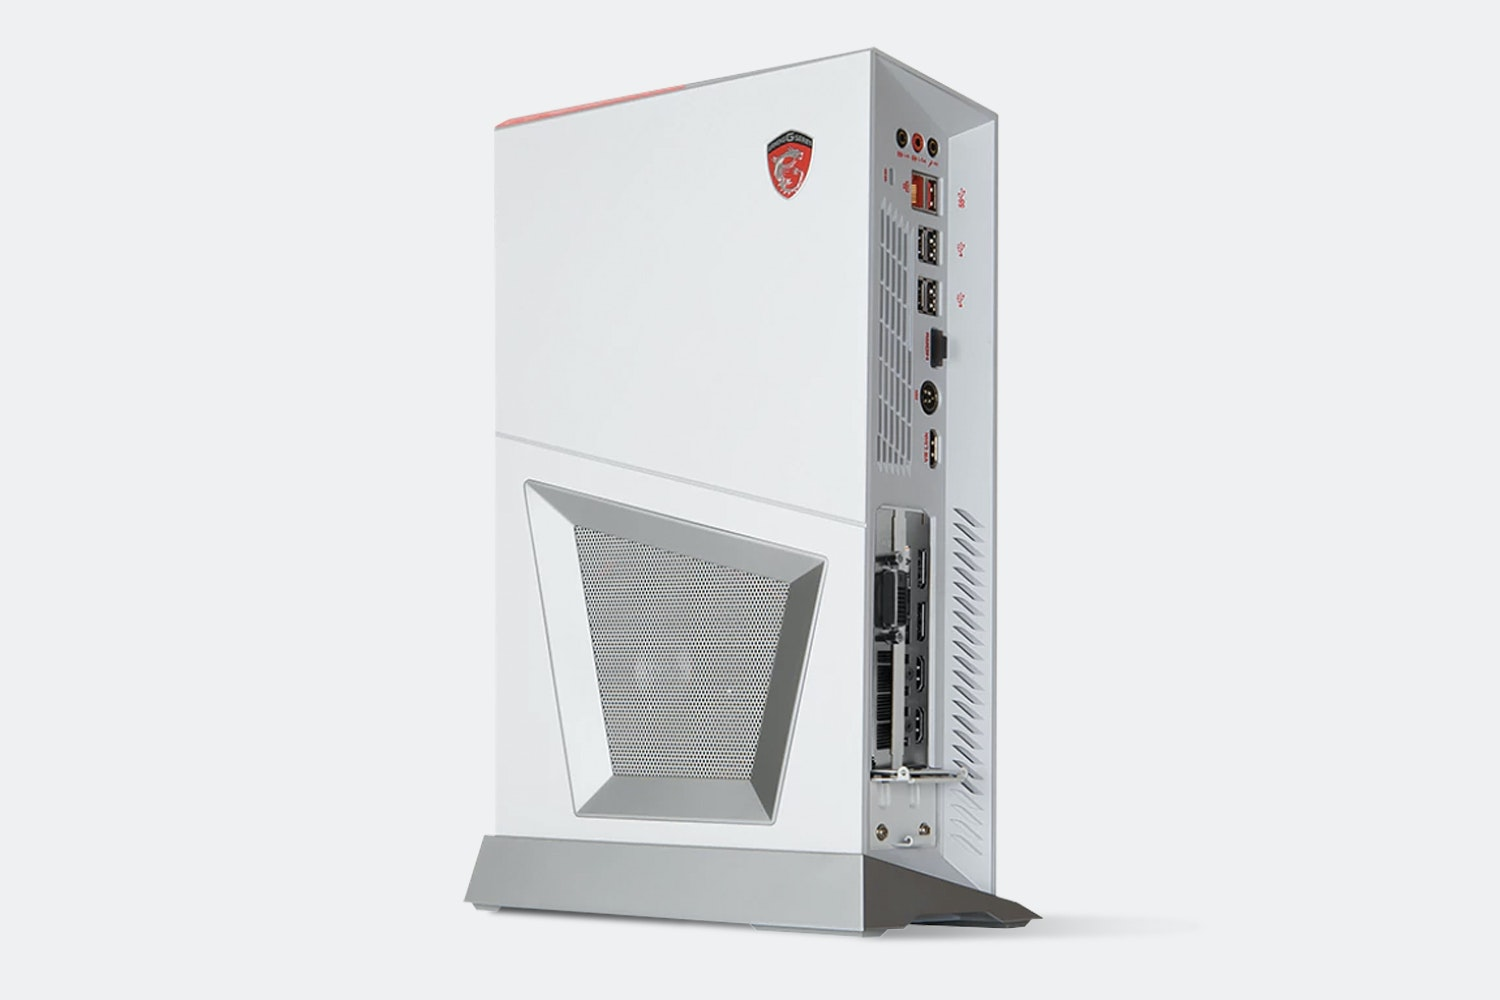 MSI Trident 3 Arctic Limited Edition